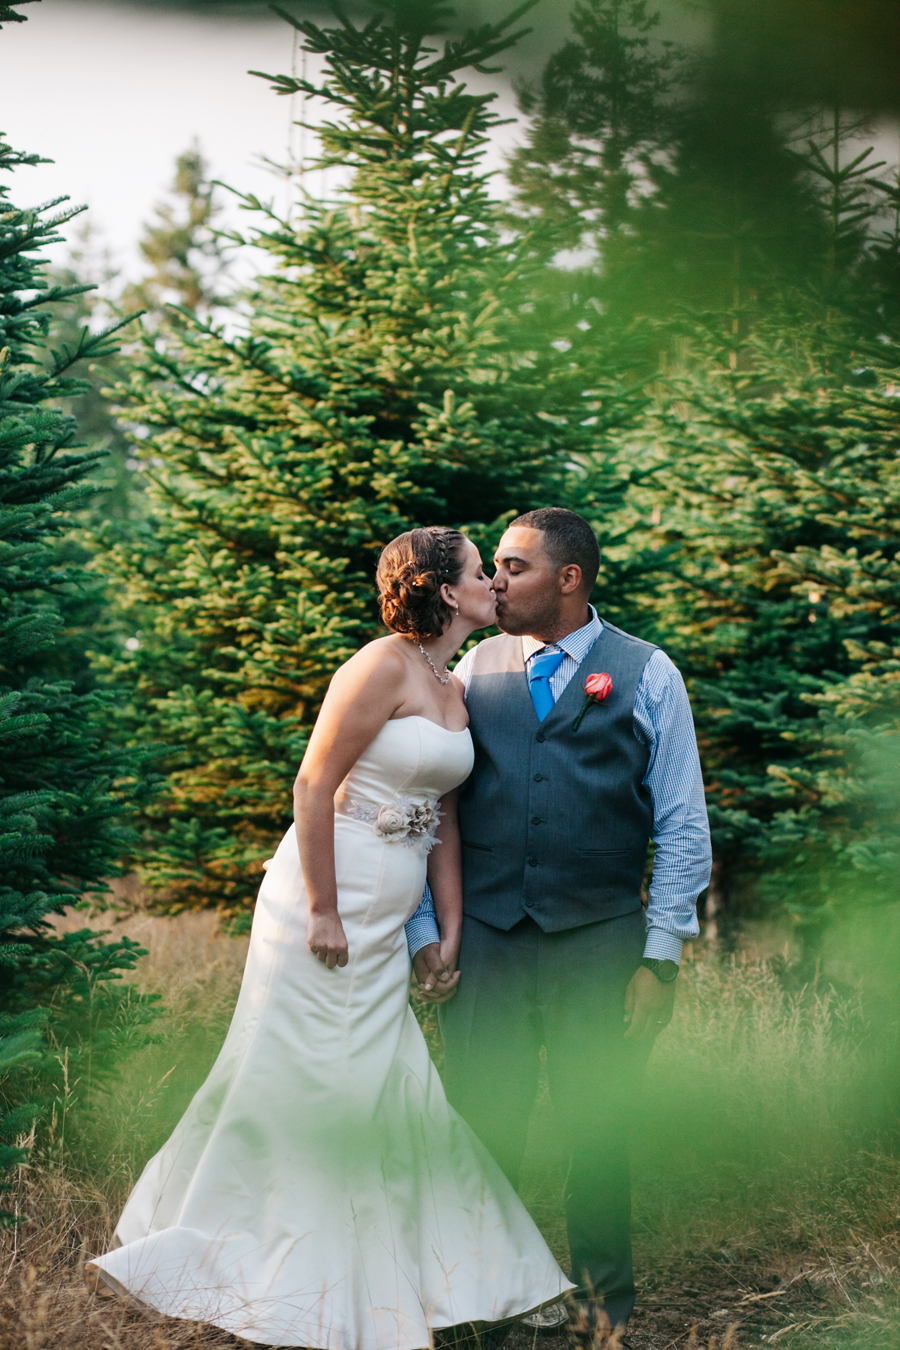 035-portland-oregon-silverton-tree-farm-wedding-katheryn-moran-photography.jpg